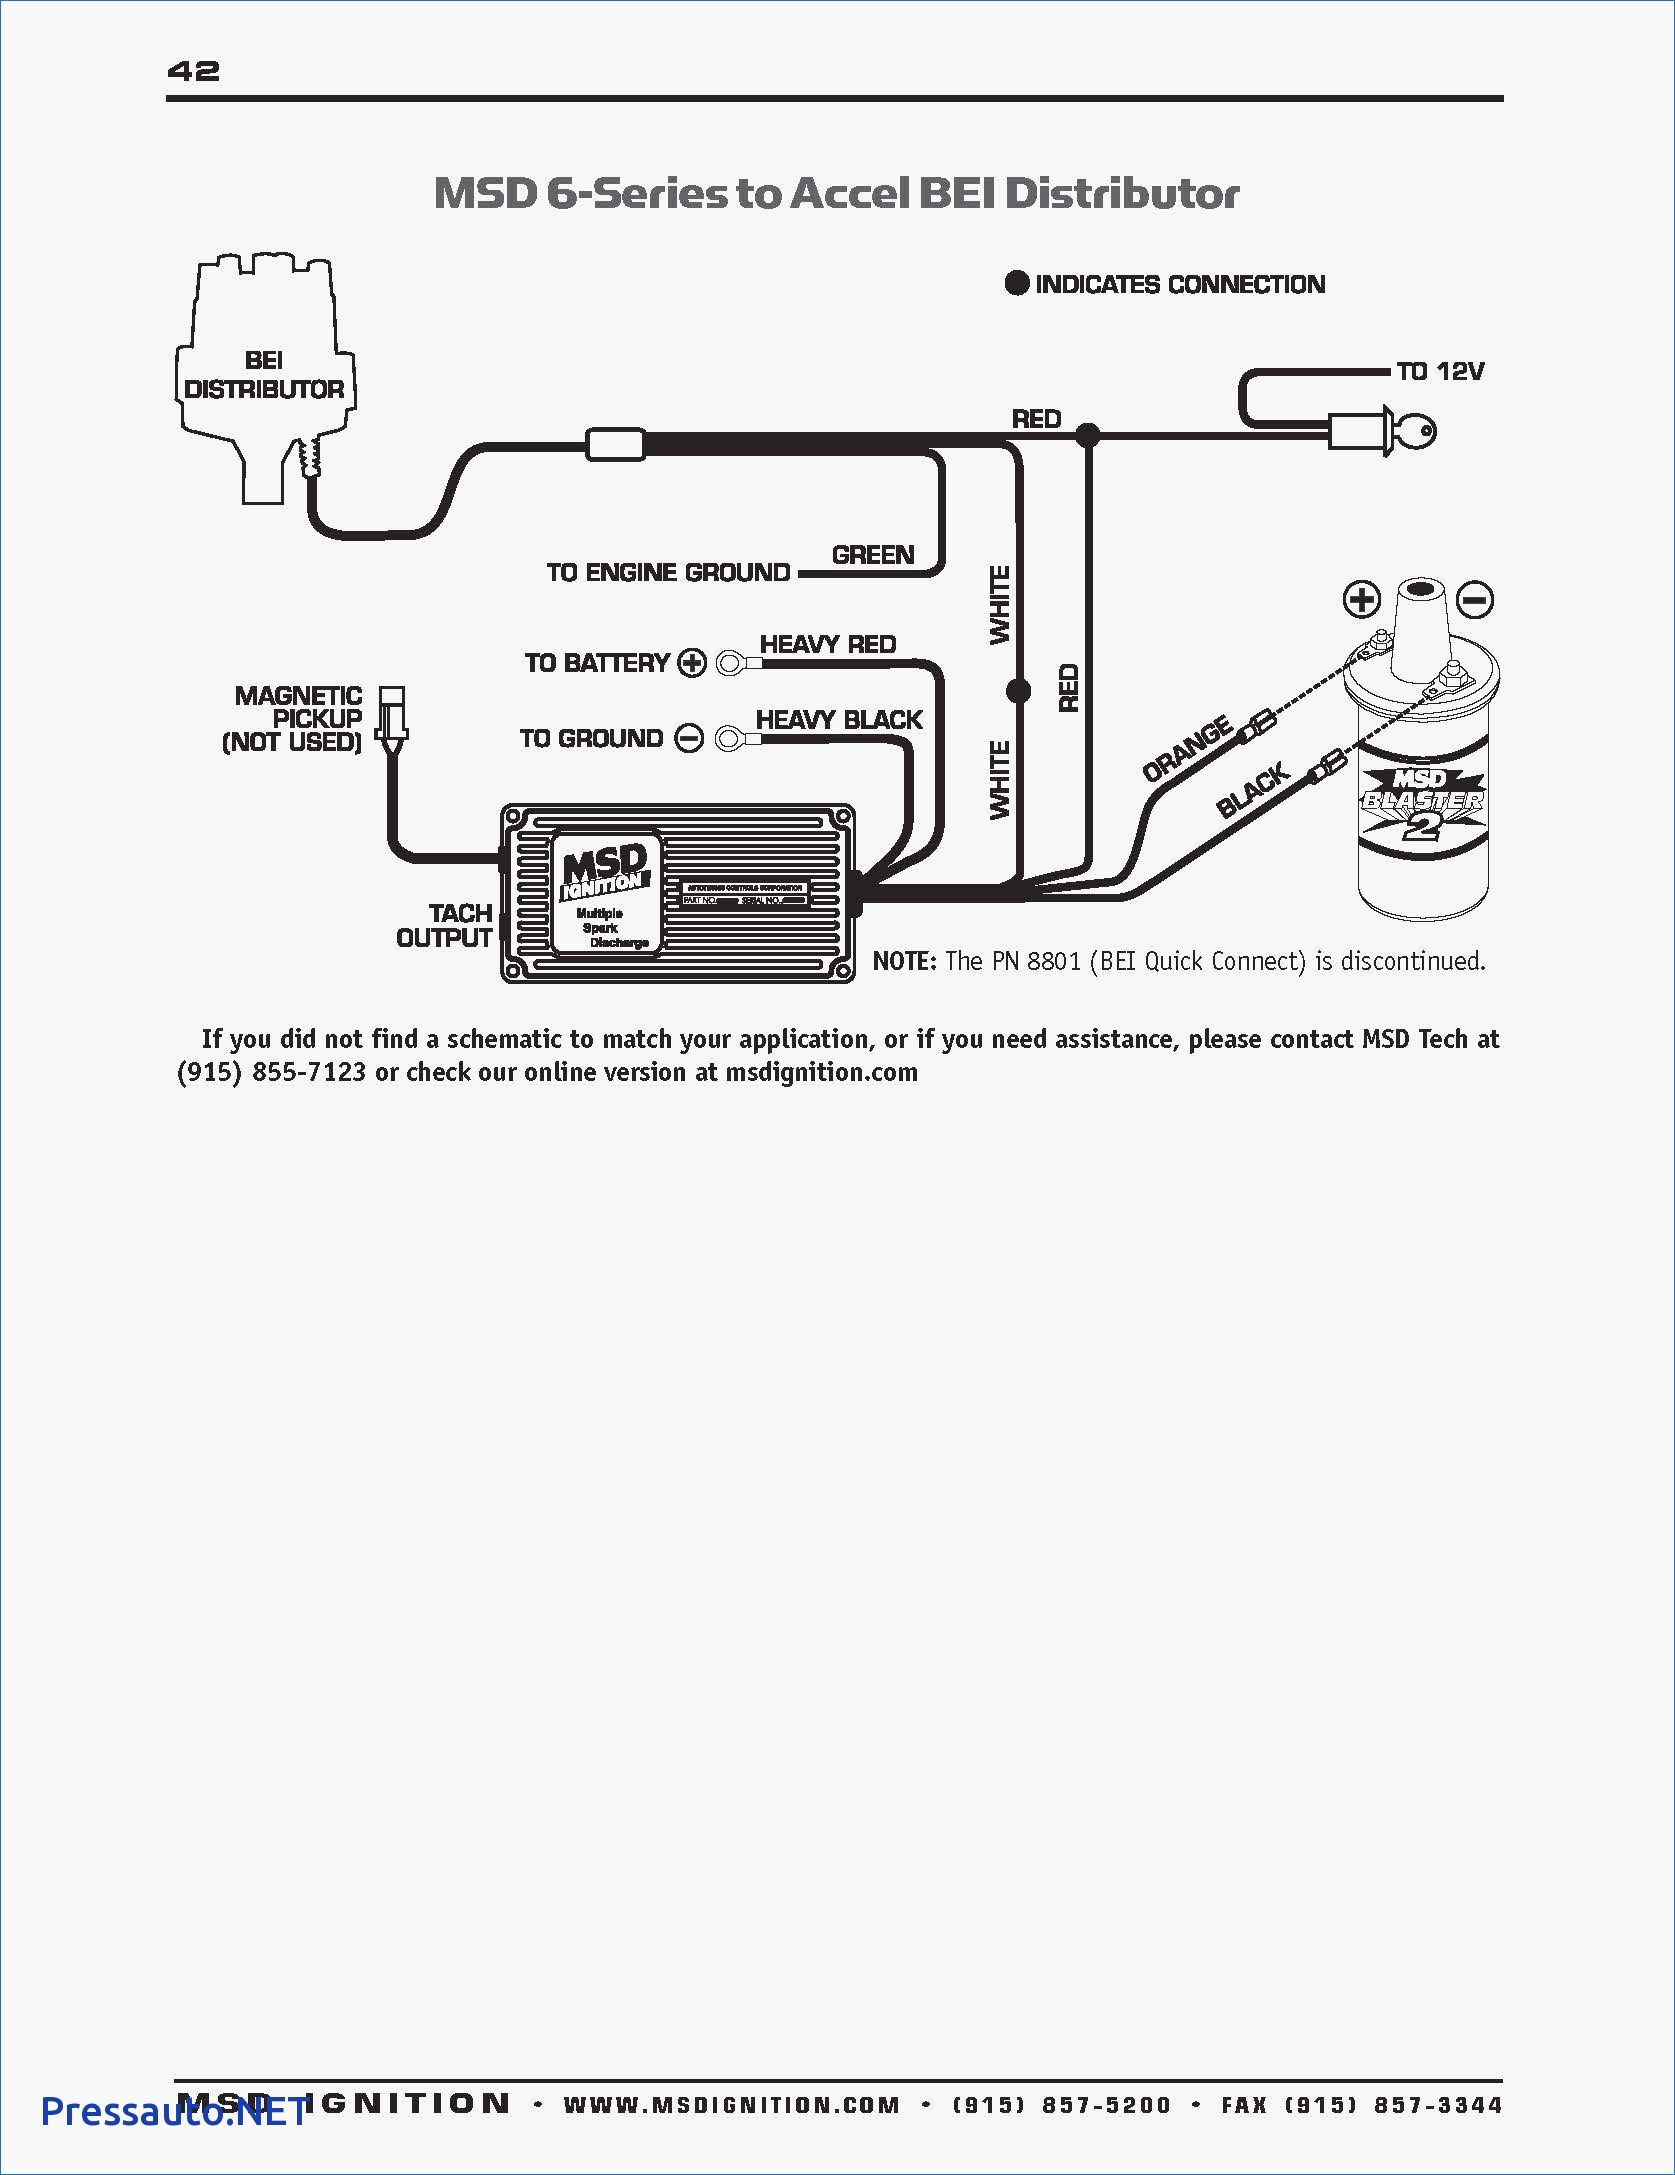 hei distributor wiring diagram wiring diagrams gallery pinterest systems wiring diagrams further msd hei distributor wiring diagram [ 1675 x 2175 Pixel ]